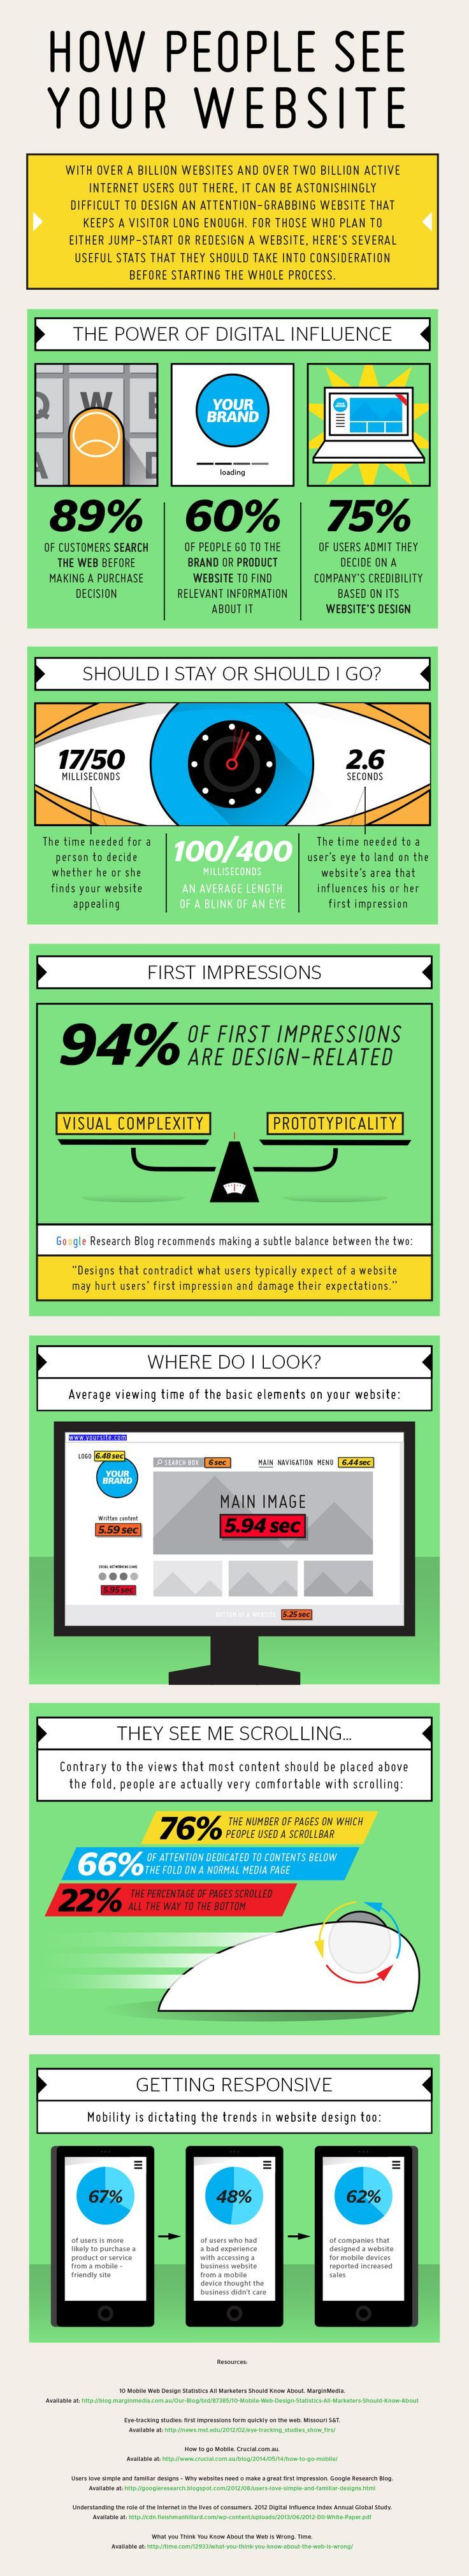 How People See Your Website - #Infographic: